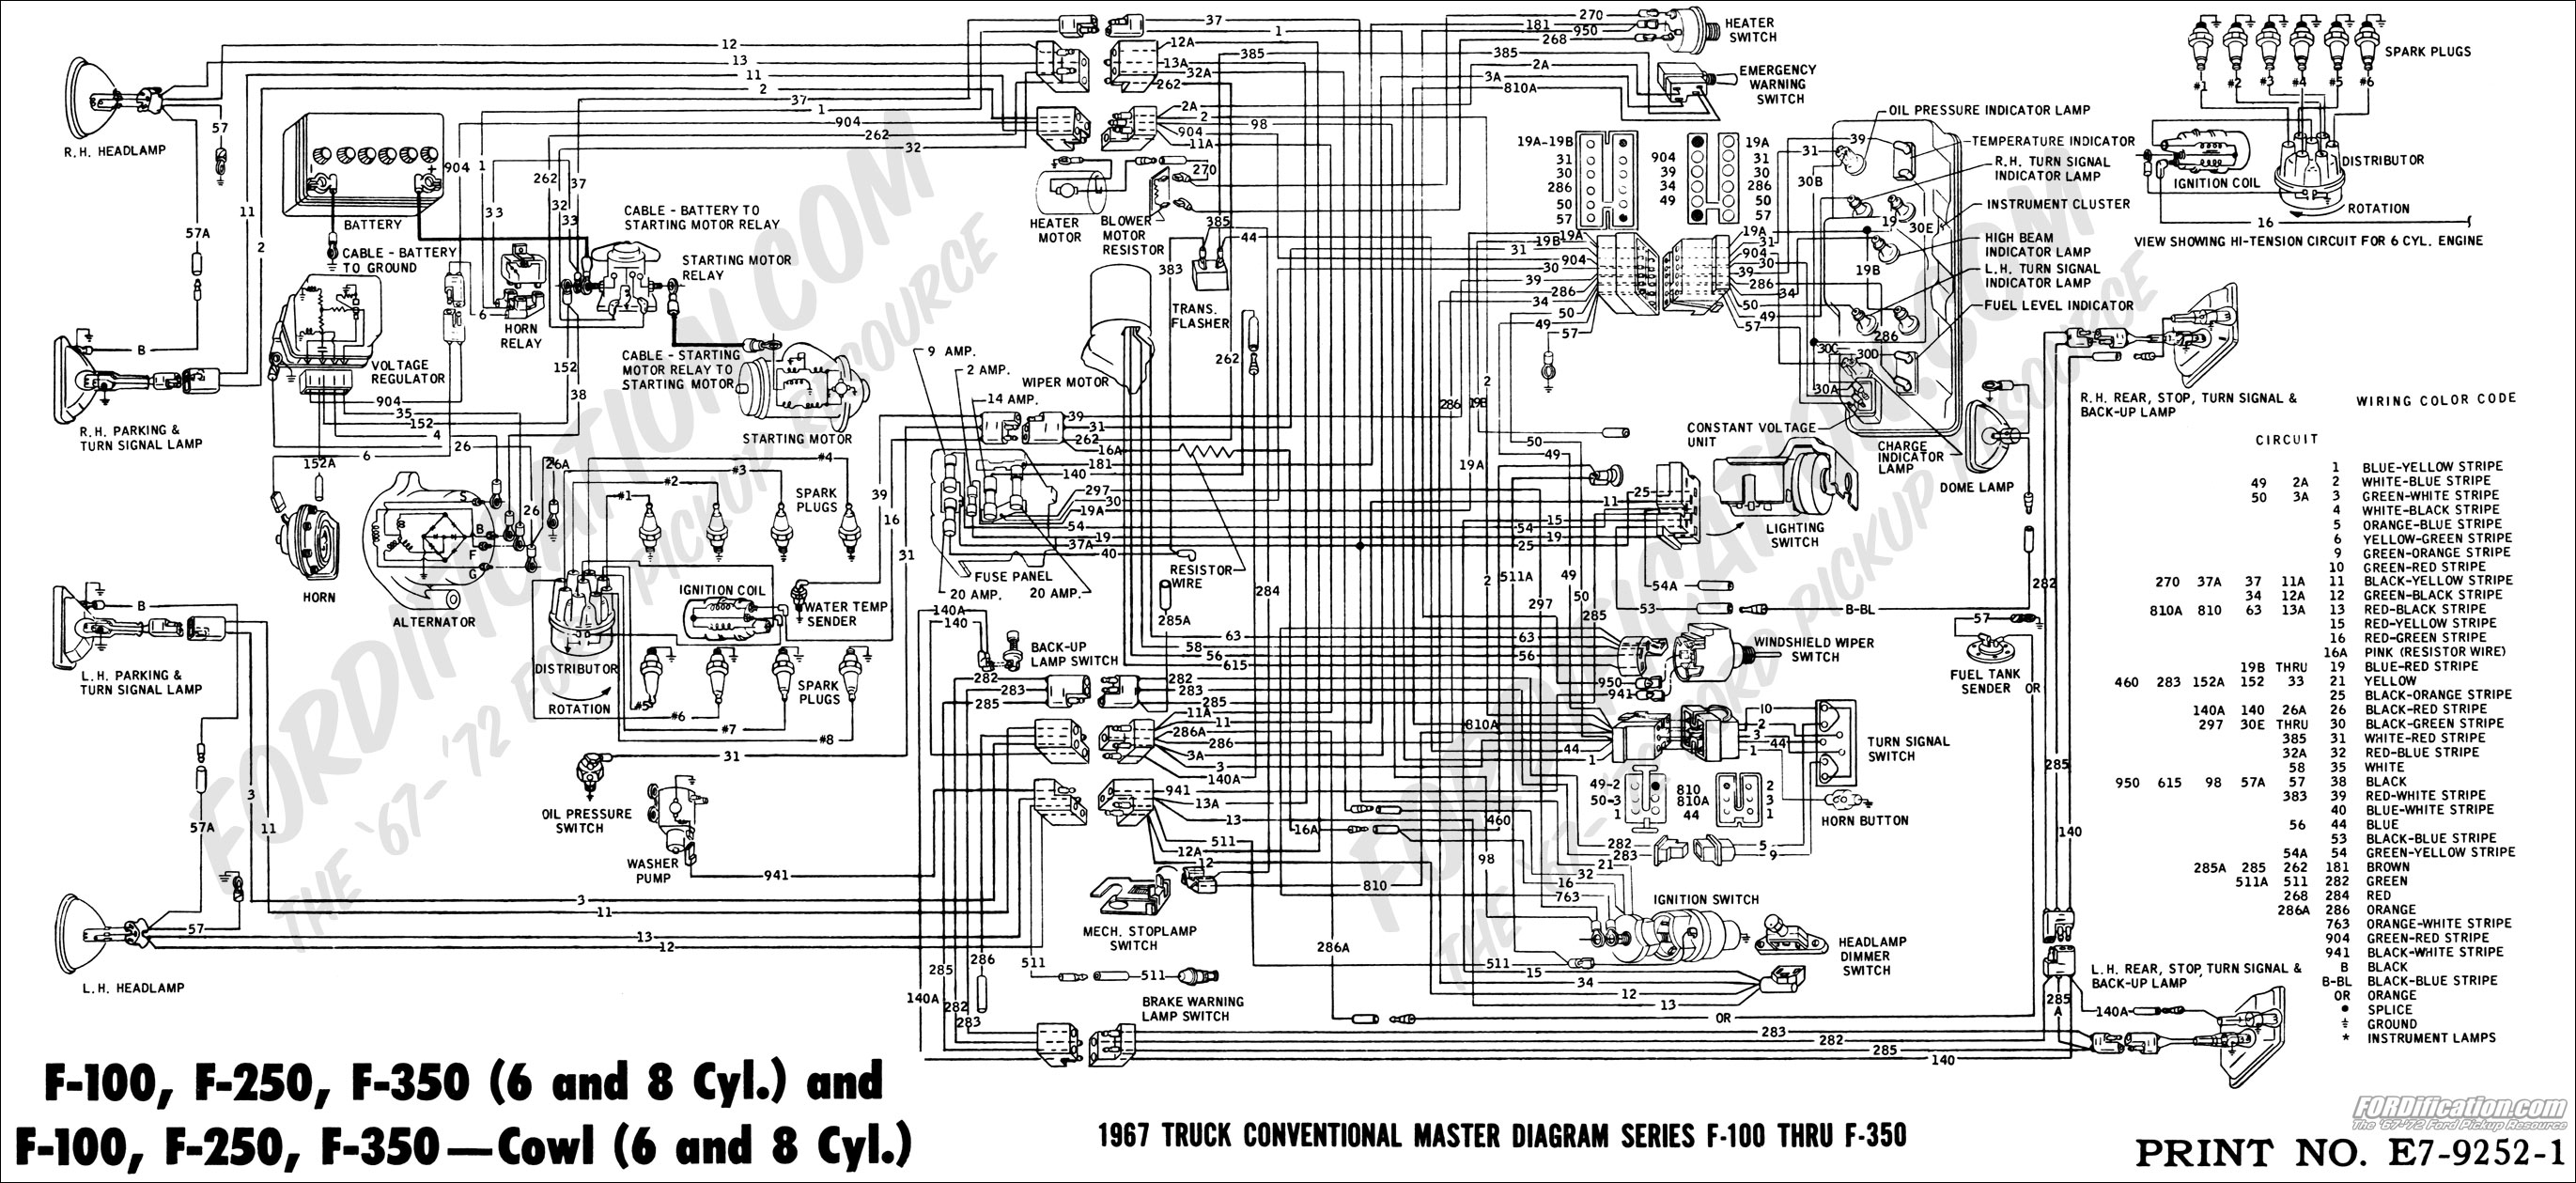 67masterdiagram 07 f150 starter wiring diagram 07 f150 wiring diagram \u2022 wiring wiring diagram for 2002 f250 starter at mifinder.co